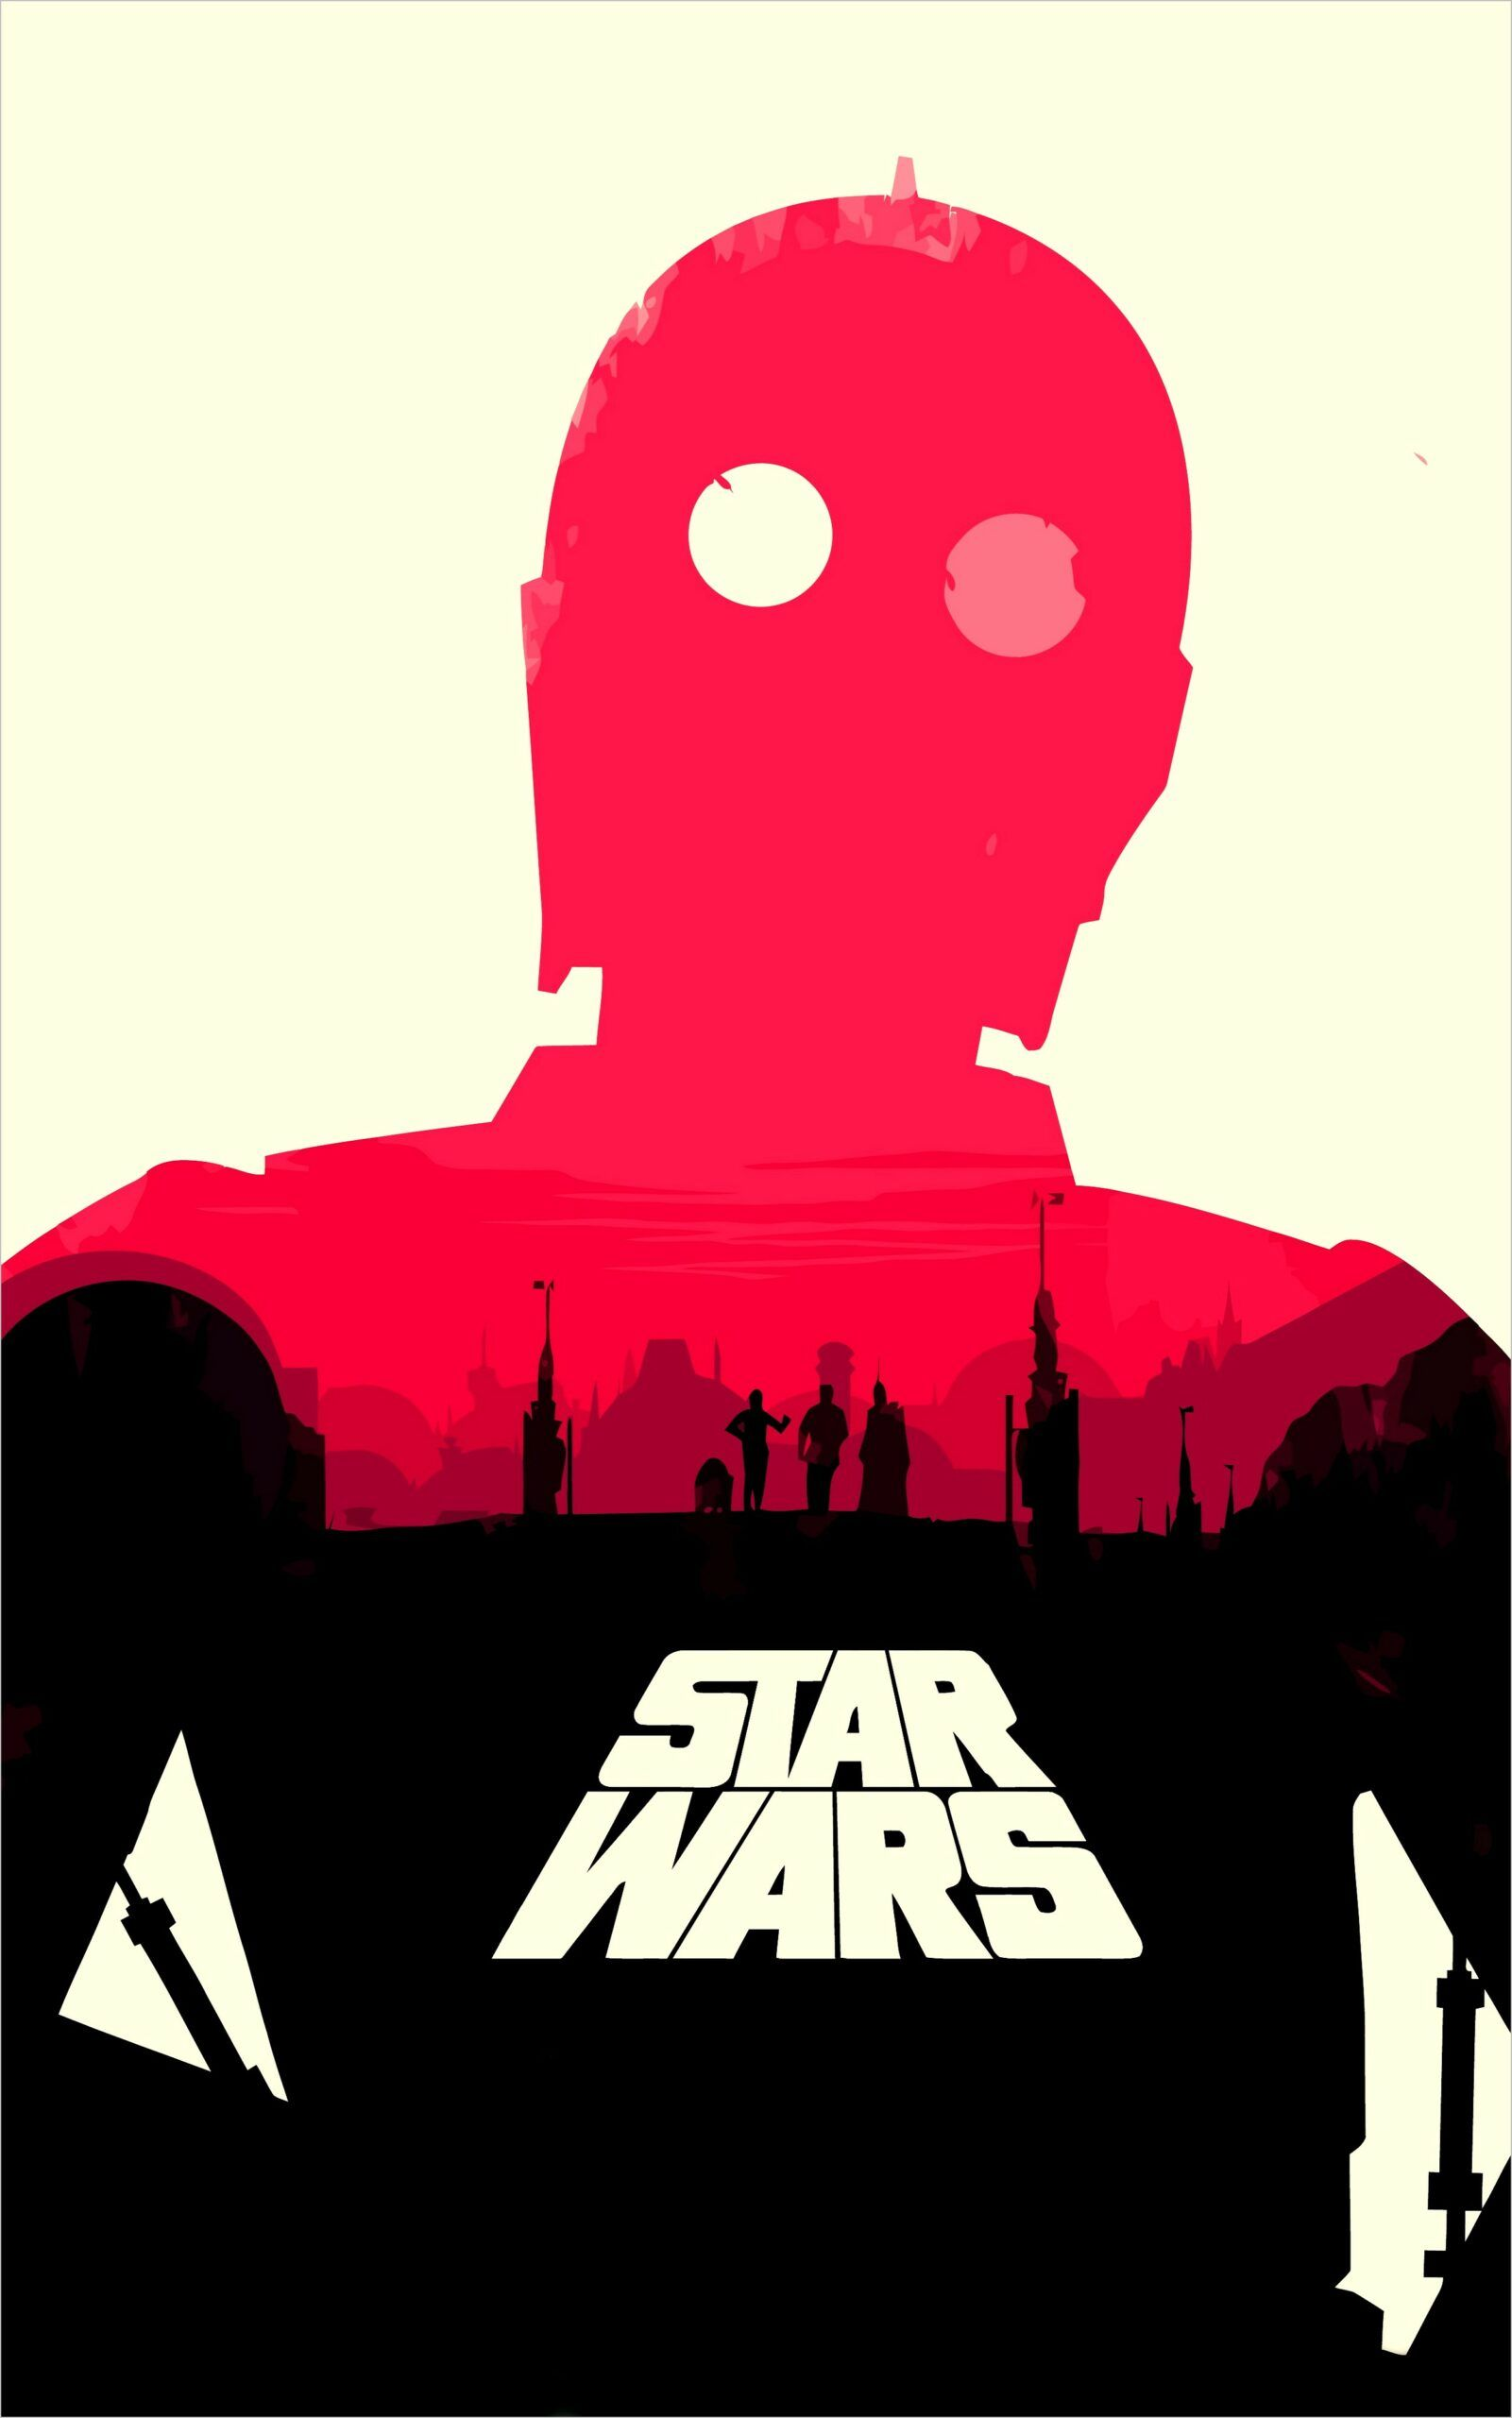 Star Wars May The 4th 4k Wallpaper In 2020 Star Wars Poster Star Wars Movies Posters Star Wars Art